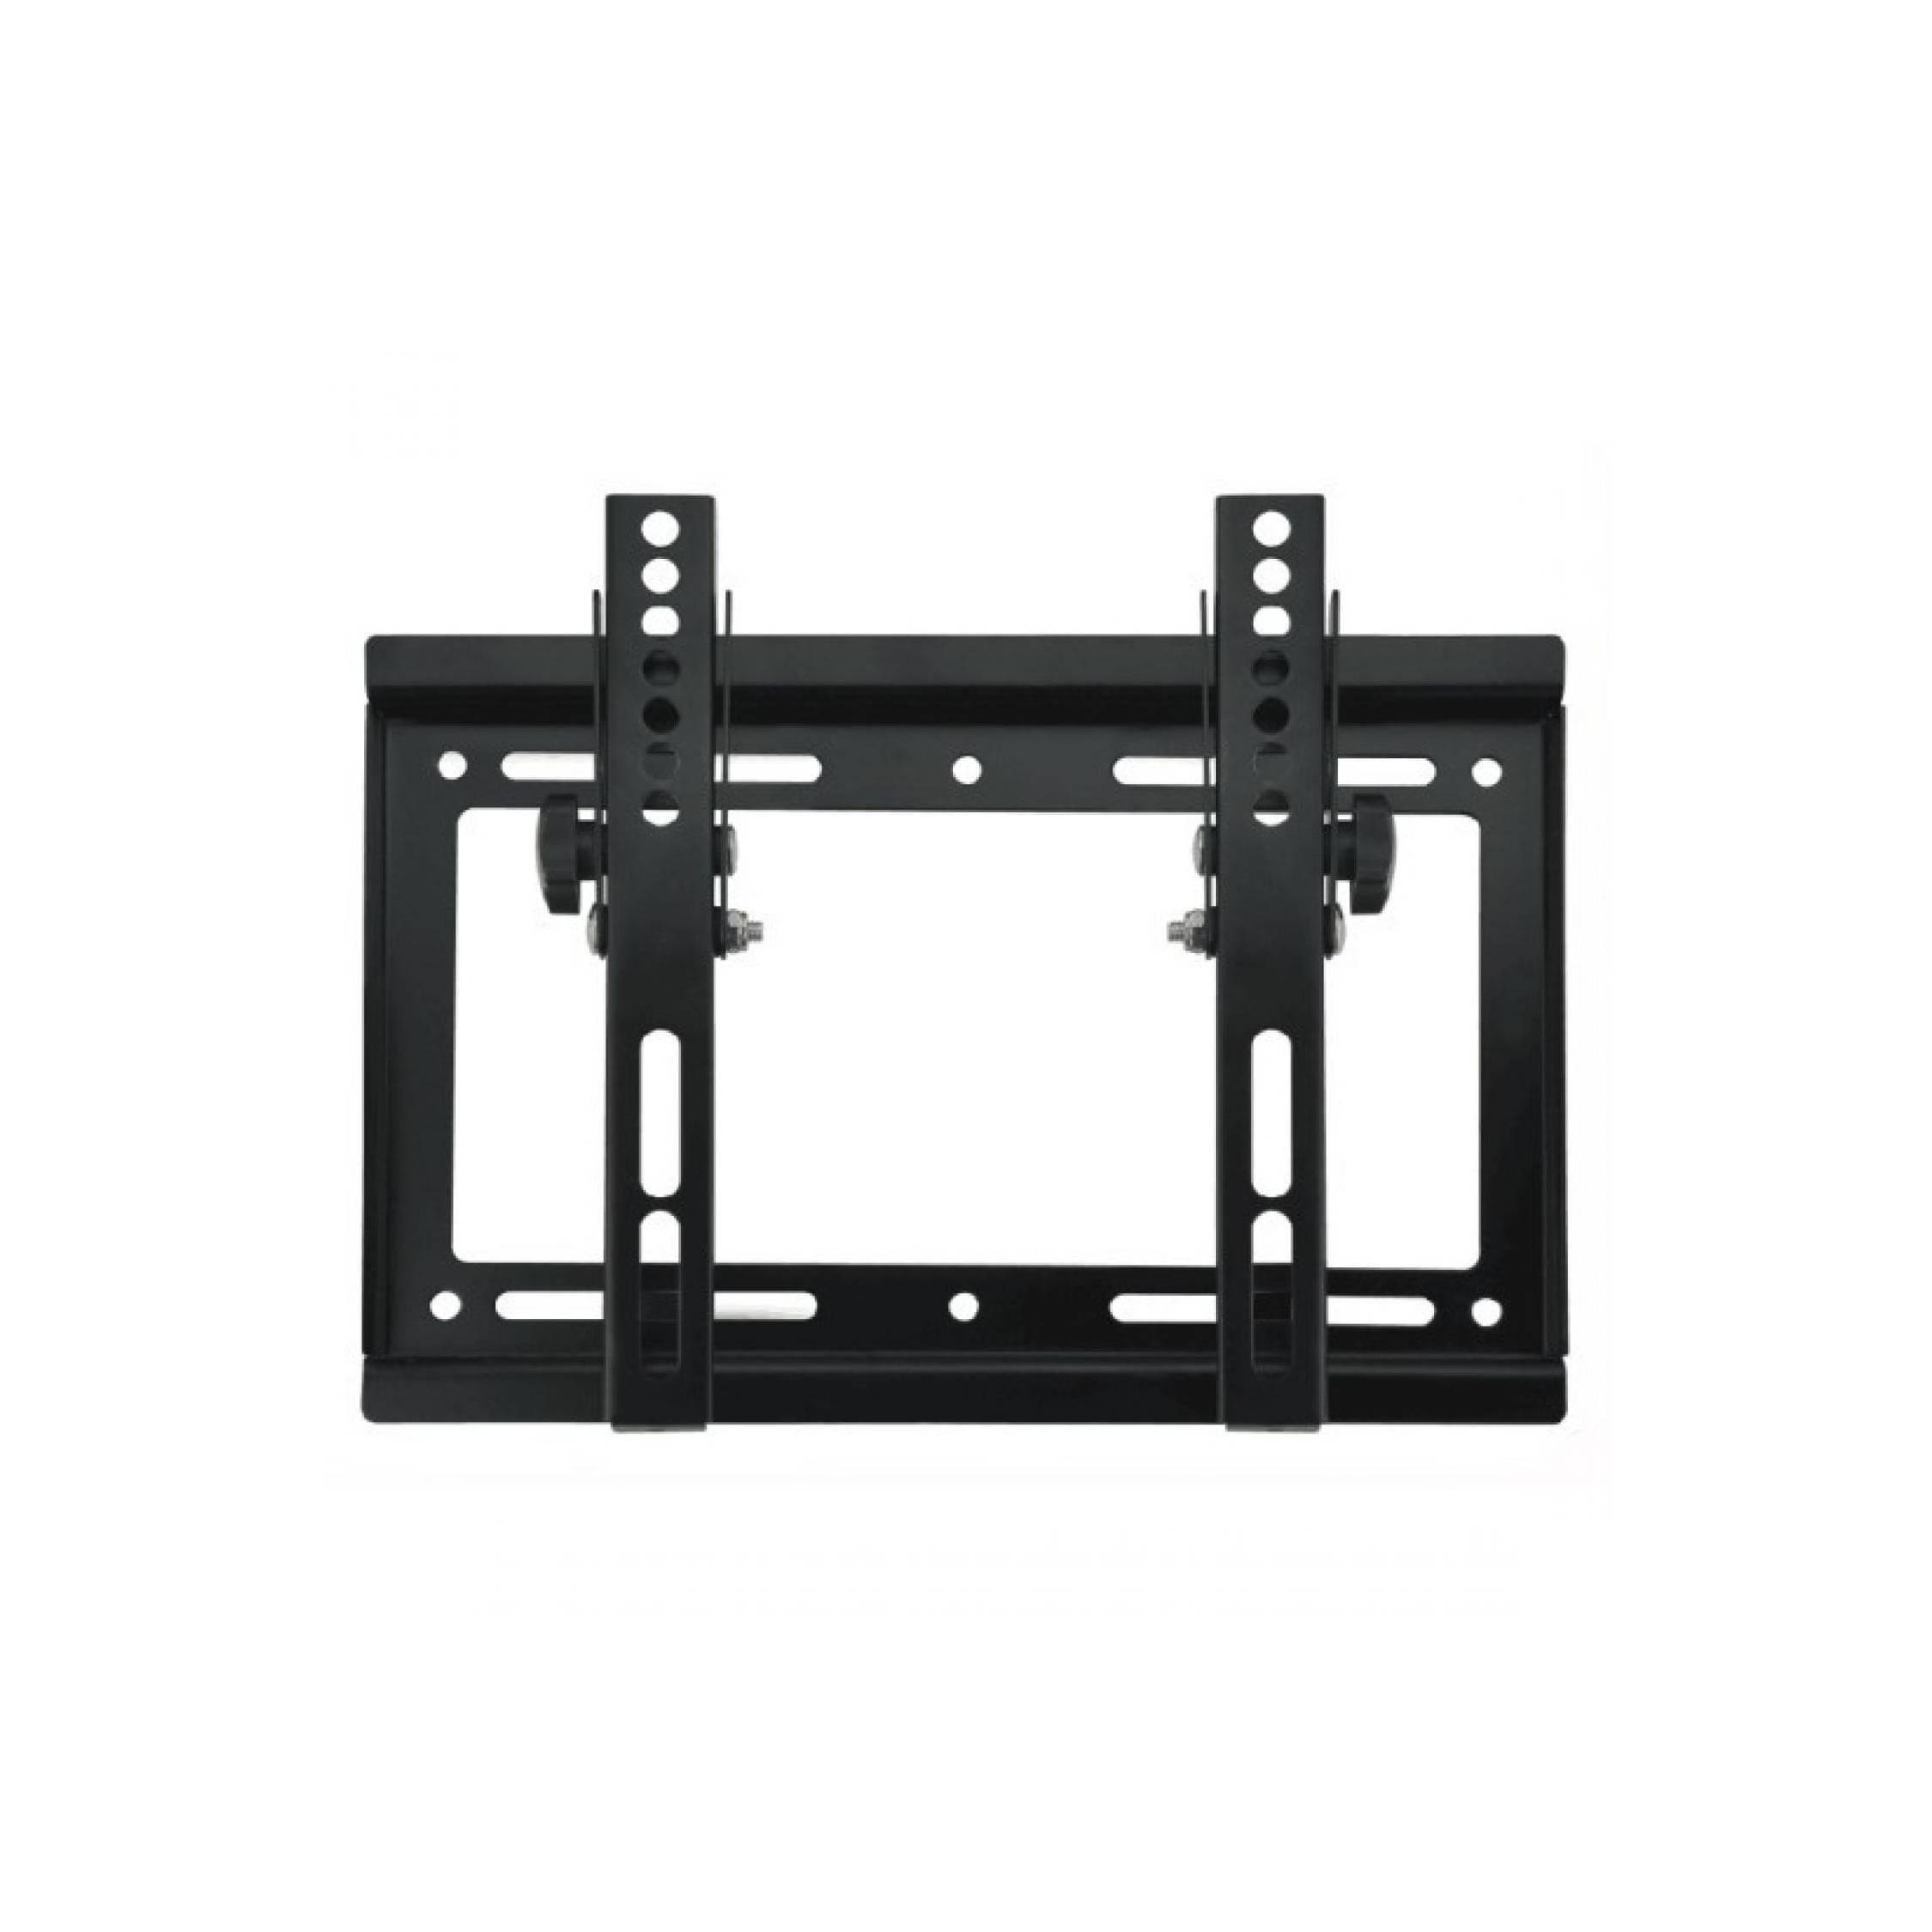 TV Bracket 1.3mm Thick 200 x 200 Pitch for 14-42 Inch TV